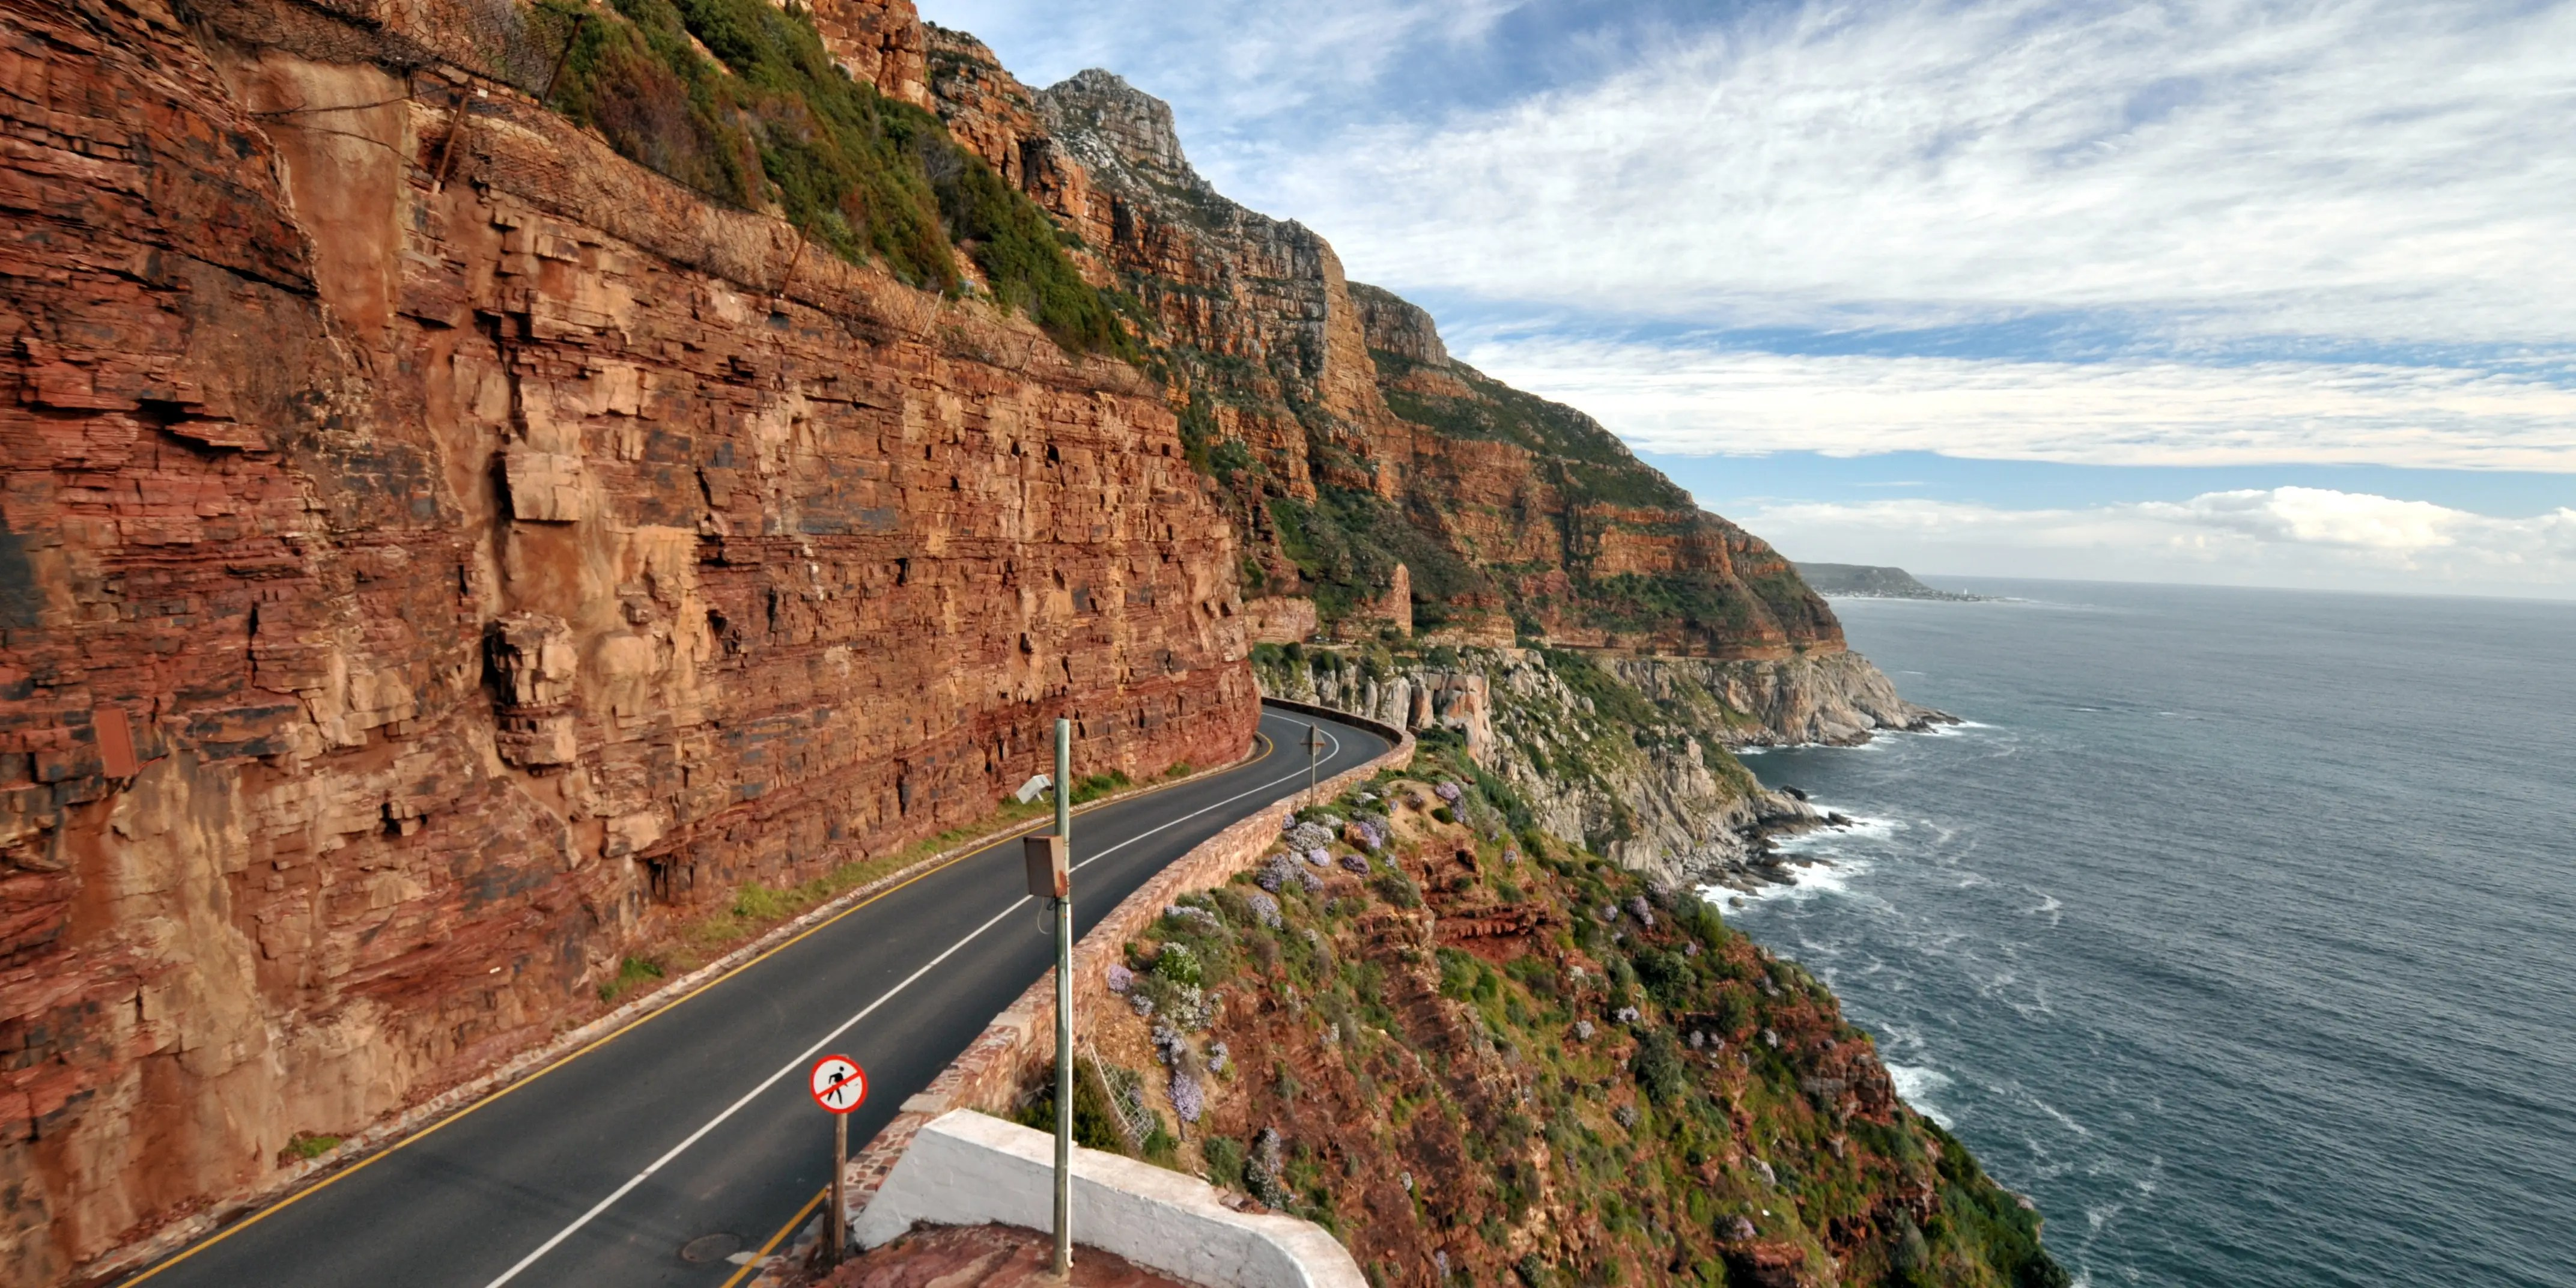 Chapman's Peak Drive in South Africa is about five miles long with 114 curves and offers stunning 180-degree views of both mountain and sea.